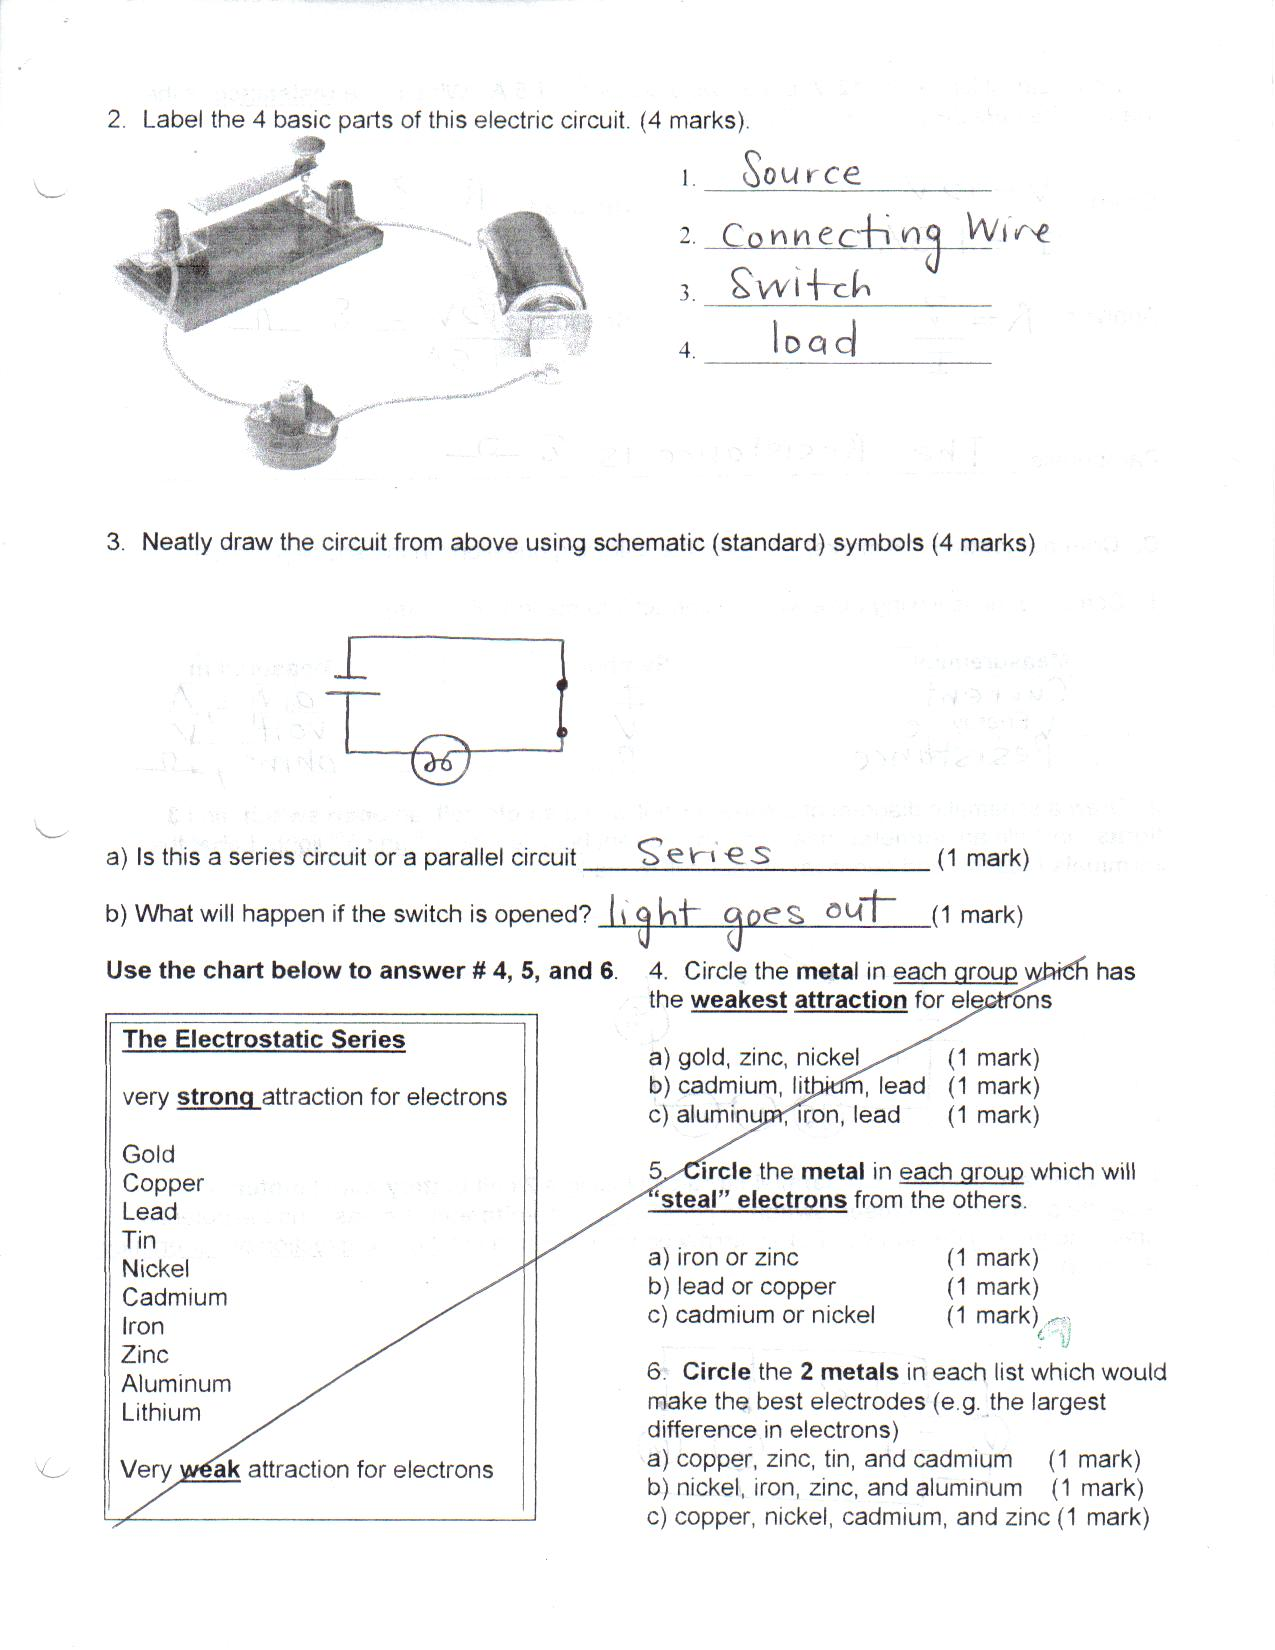 Toxic Science How Do You Make A Parallel Circuit Review B C D E